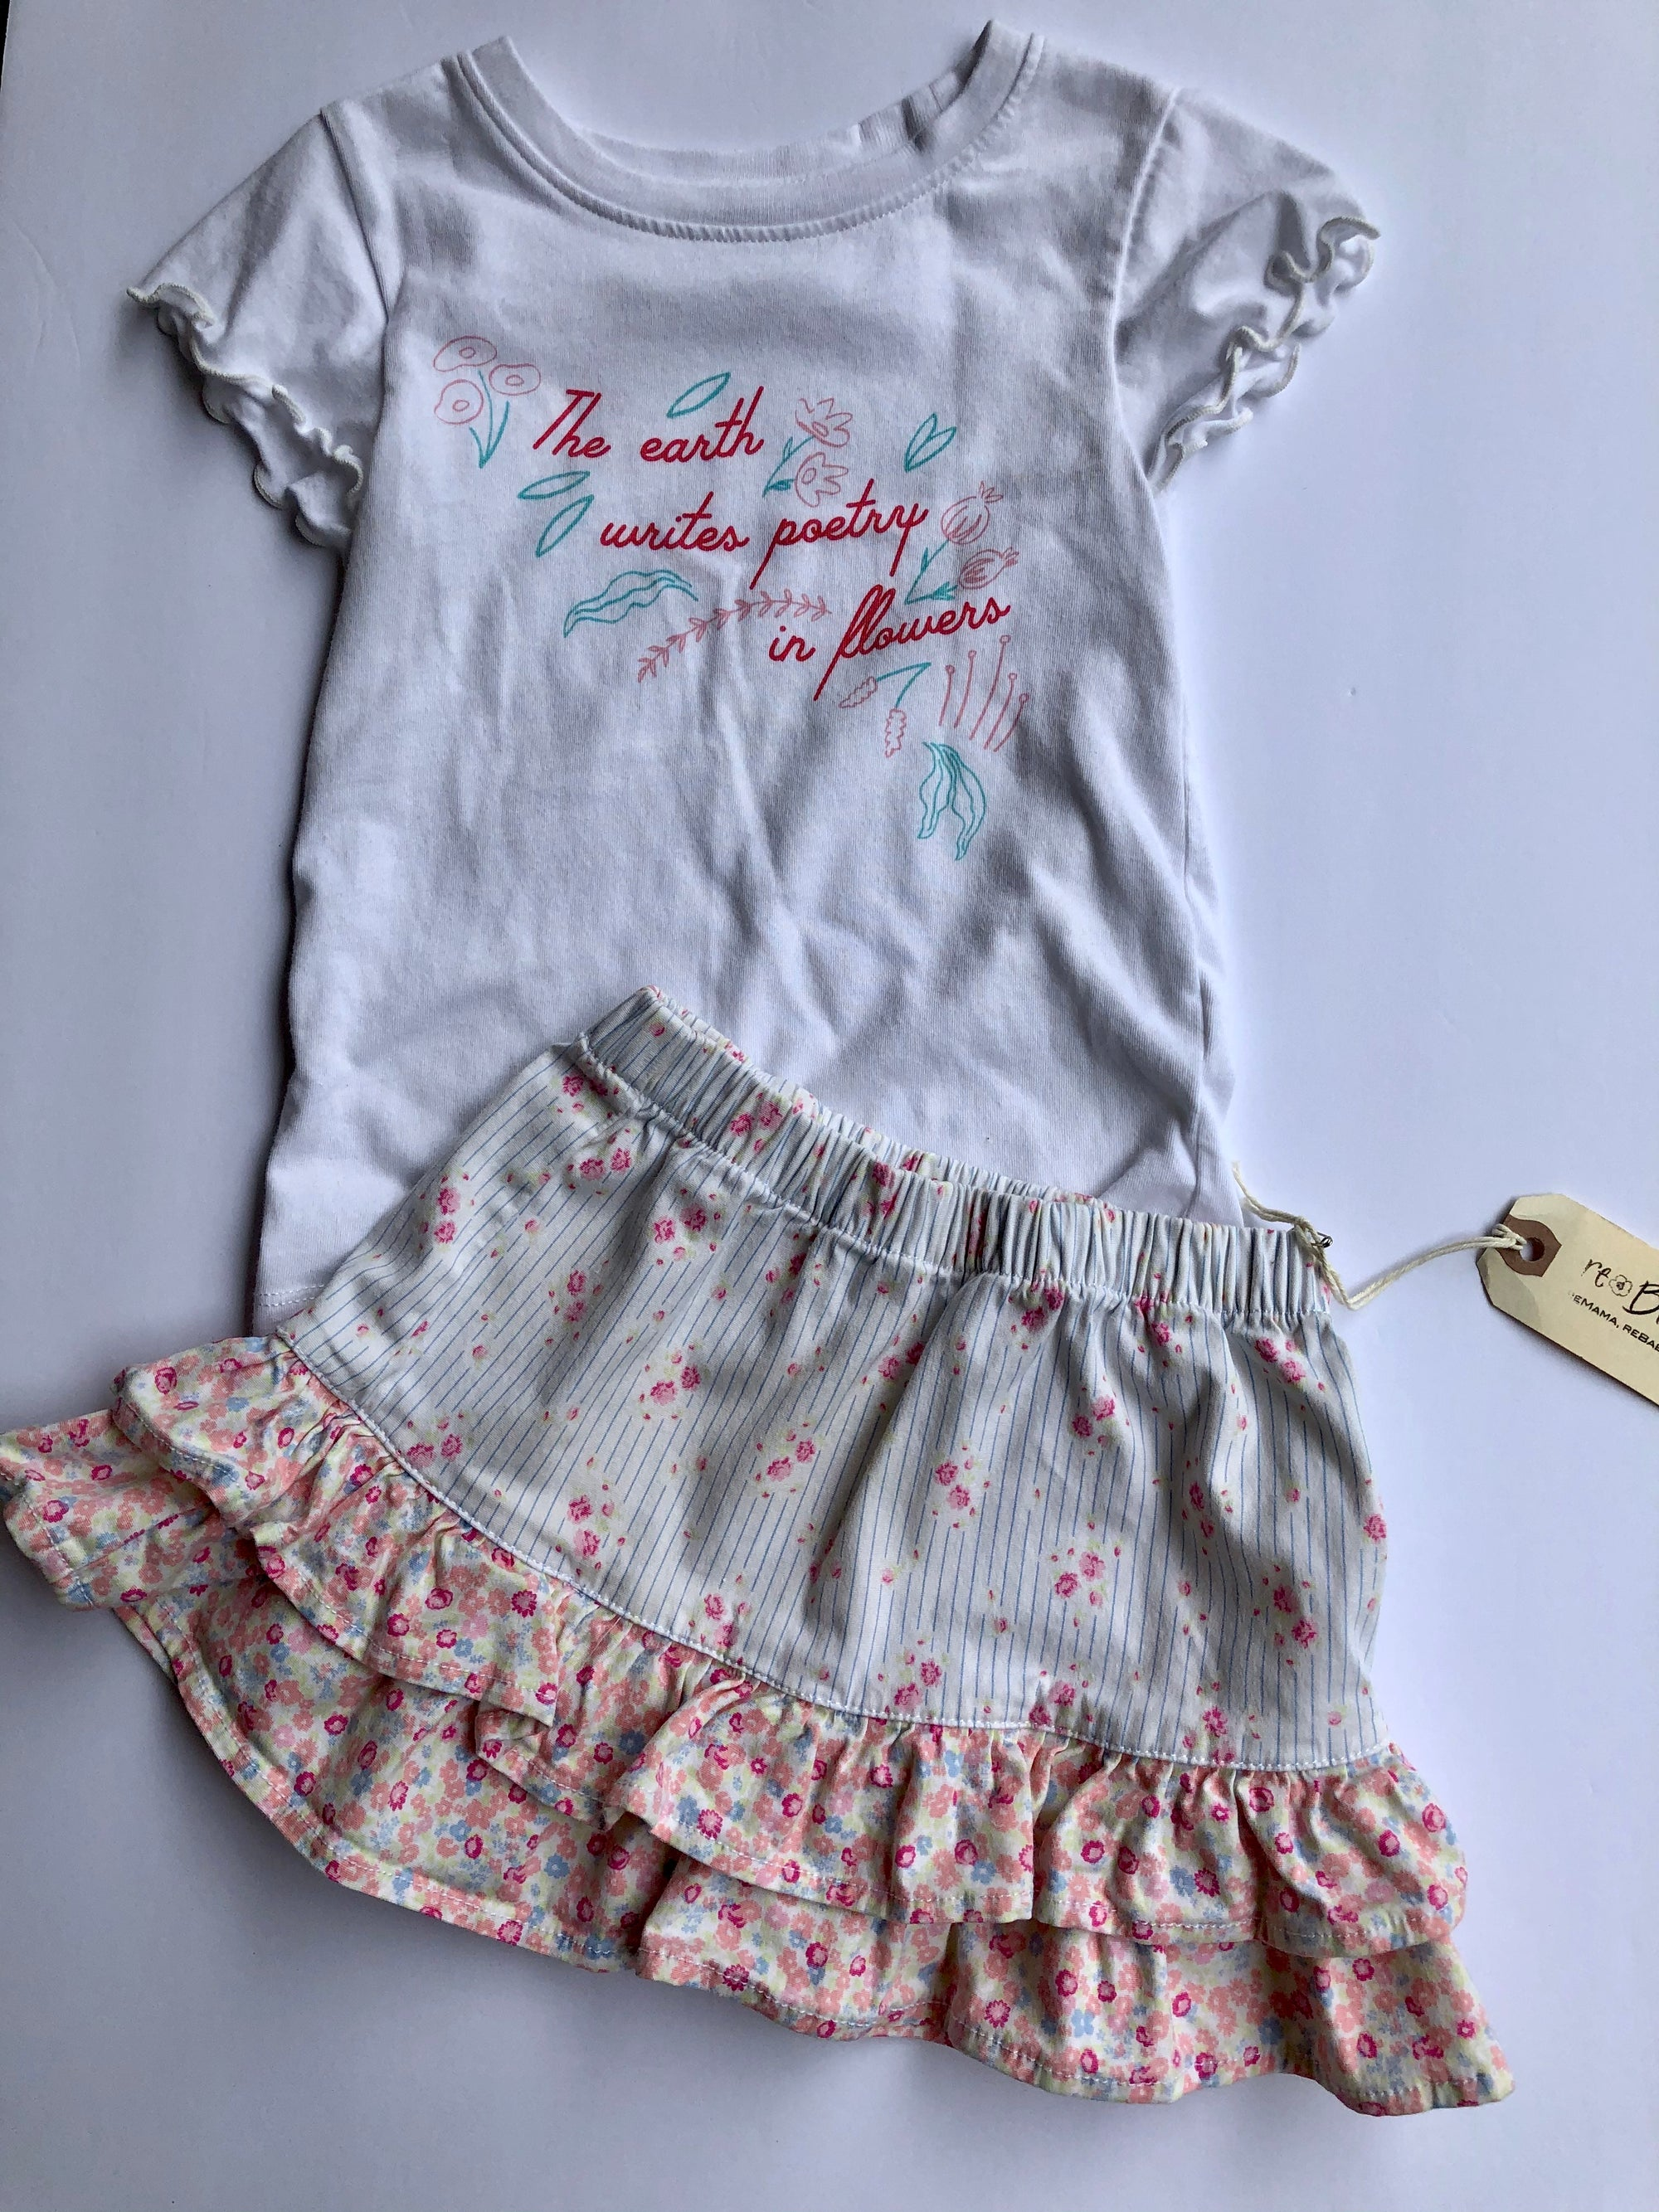 Resale 2T Falls Creek Poetry T-Shirt & Floral Hanna Anderson Skirt